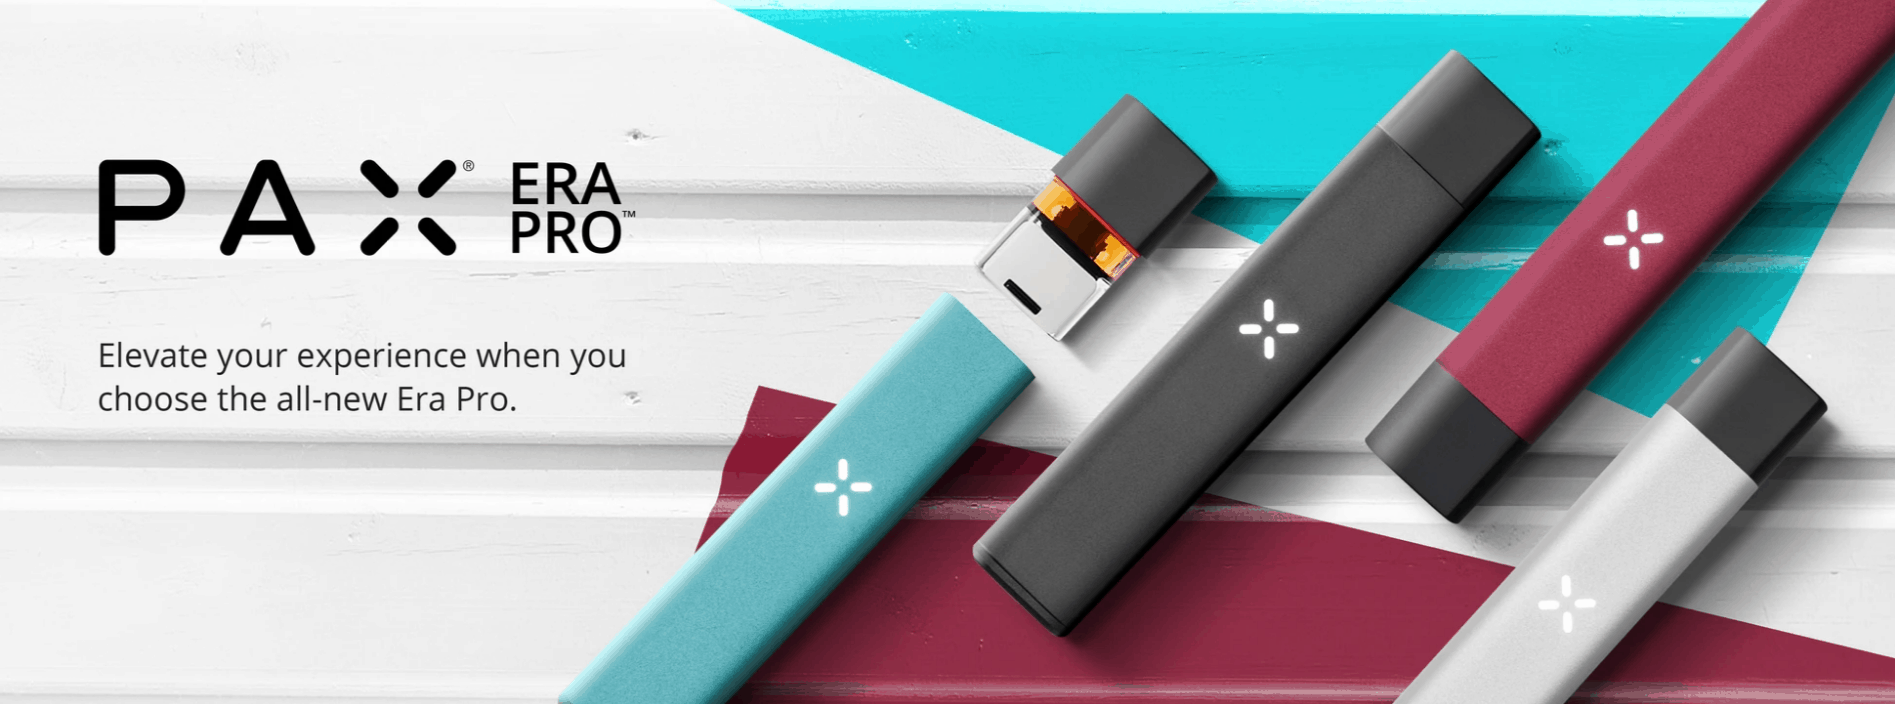 Lighter USA Vapes Coupon Code Era Pro